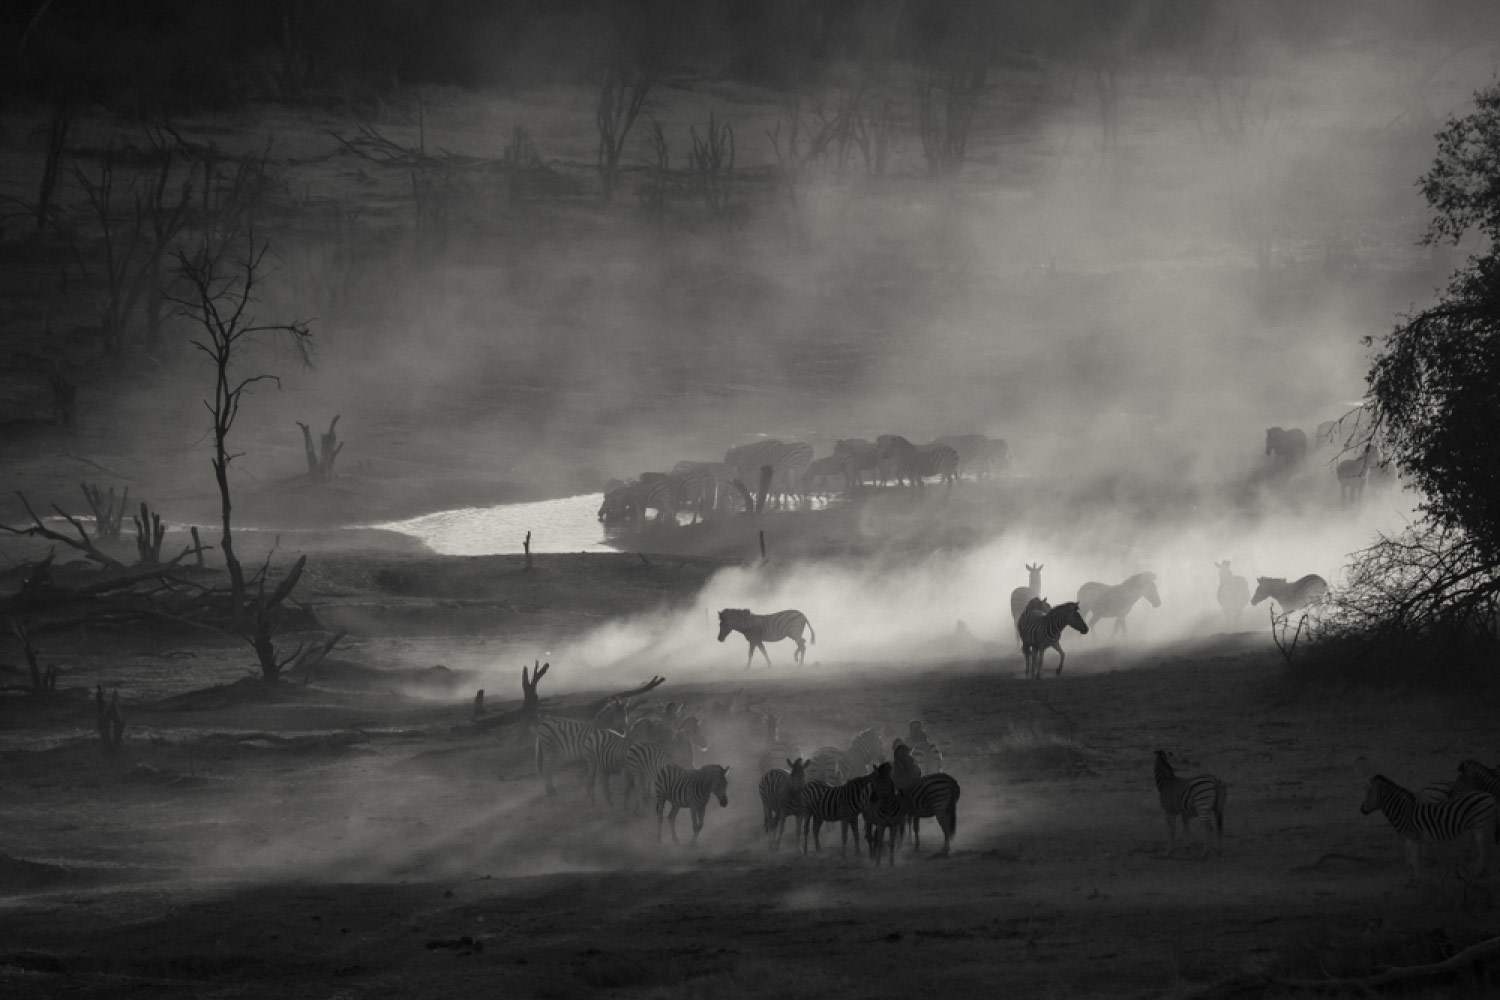 Cast To The Desert, © Daniel DUGMORE, 3rd Place, Professional - Landscape and Nature, Zebra Awards - TZIPAC Black and White Photographer of the Year